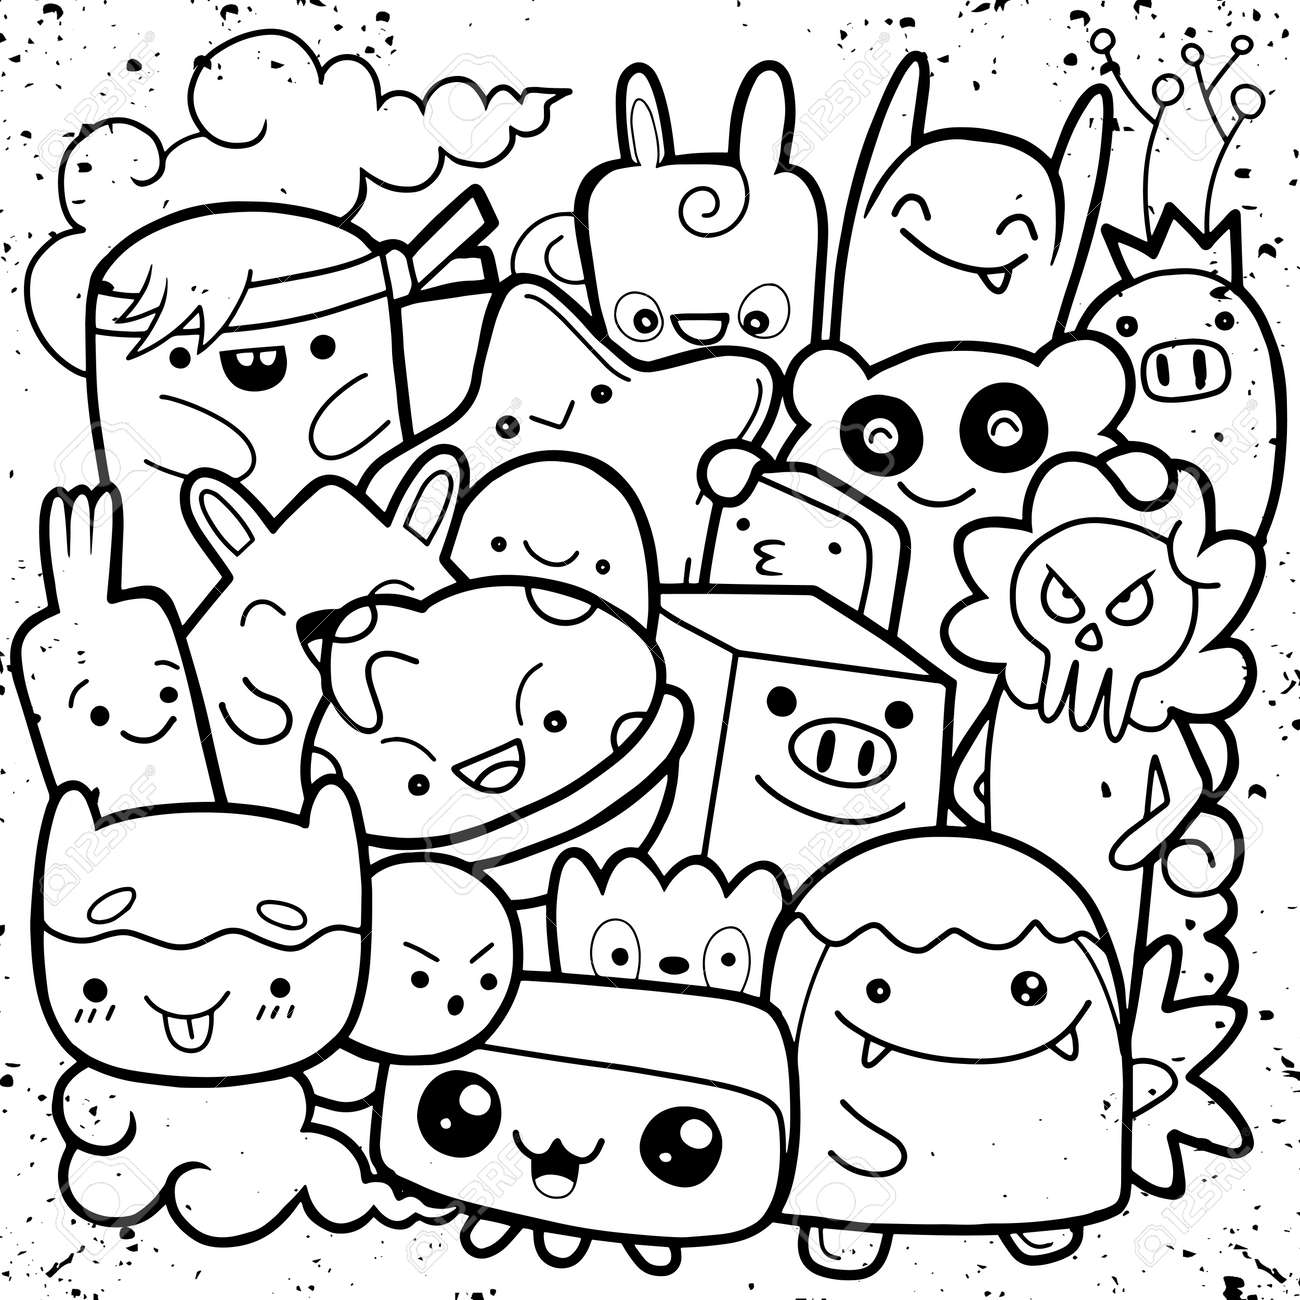 Funny monsters ,Cute Monster pattern for coloring book. Black..